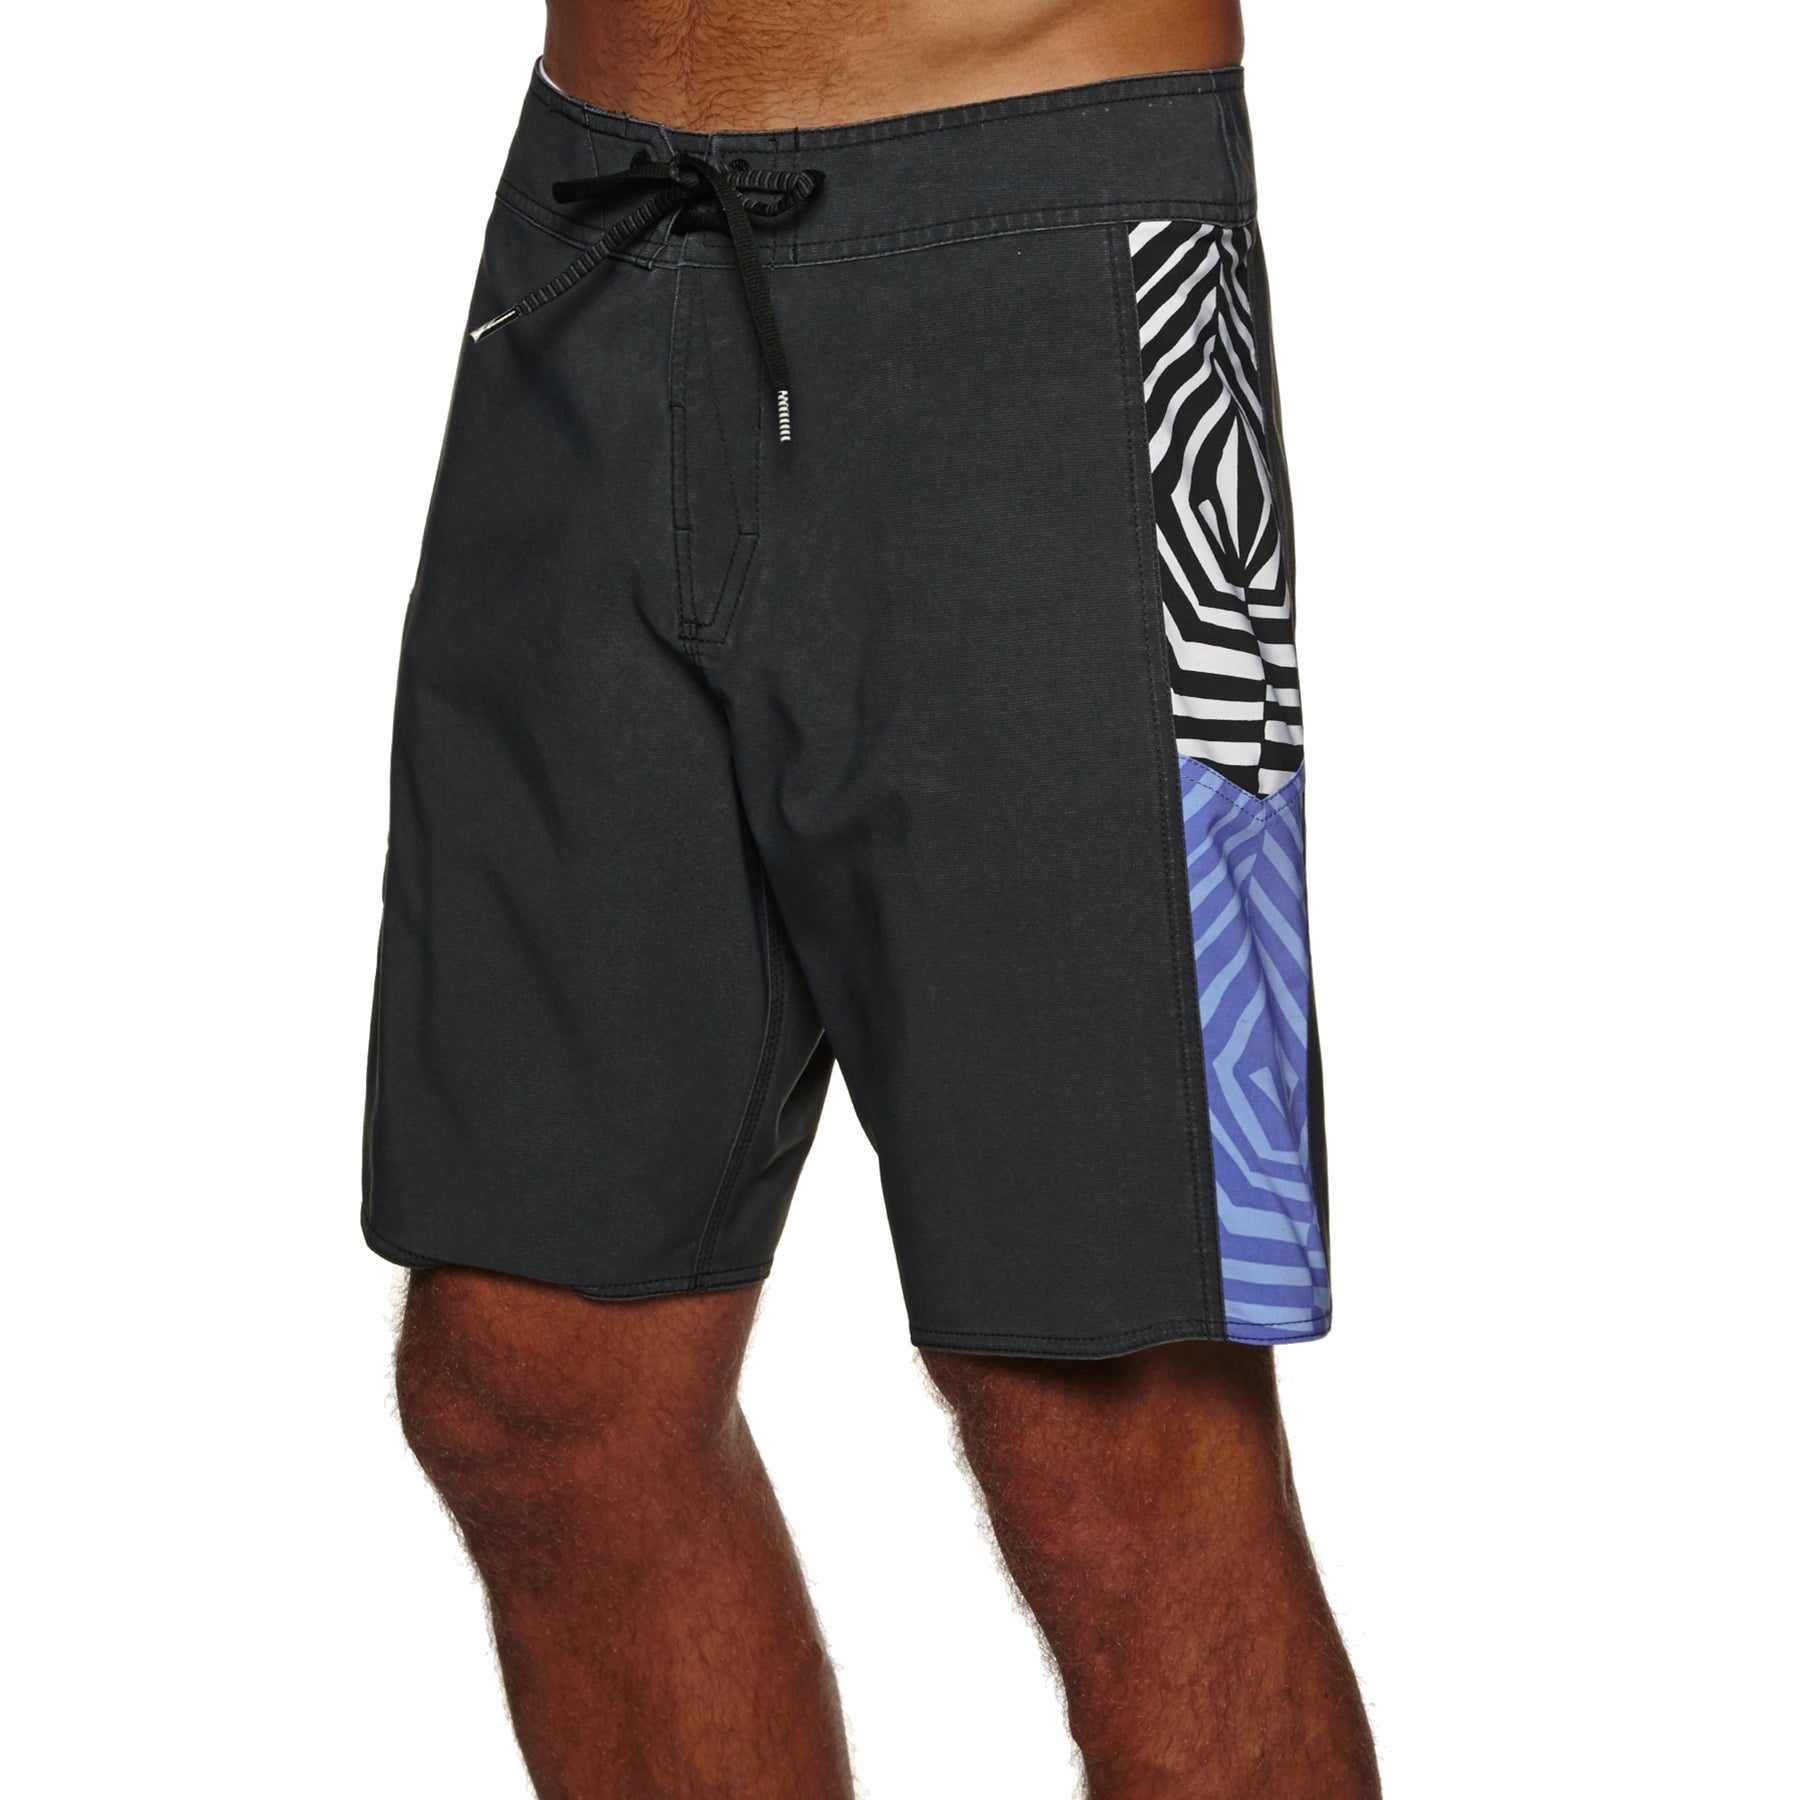 Volcom Family Deadly Mod 19 inch Boardshorts